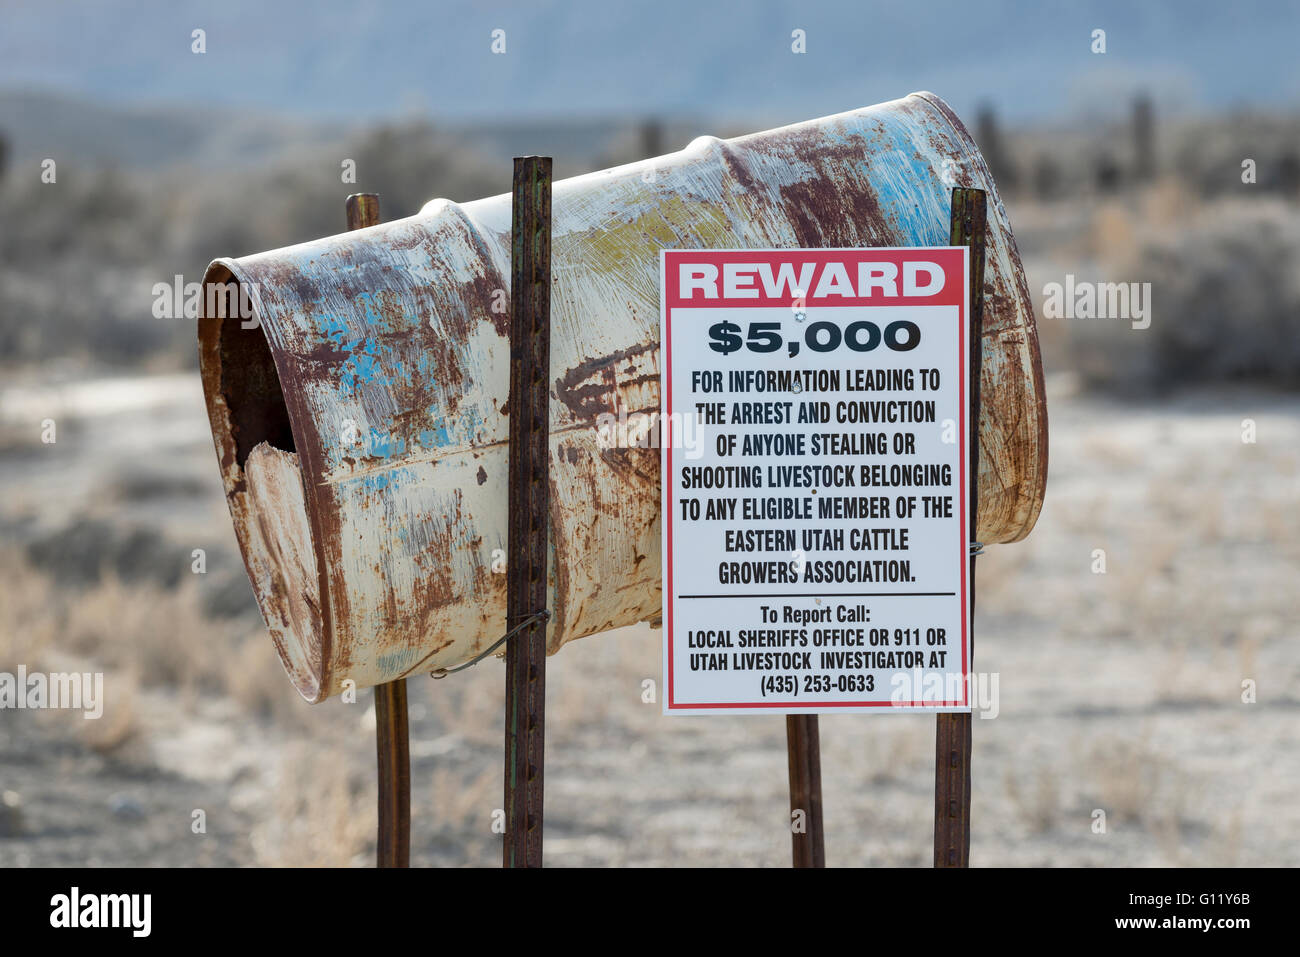 Sign in Southern Utah offering a reward for shooting or stealing cattle. - Stock Image